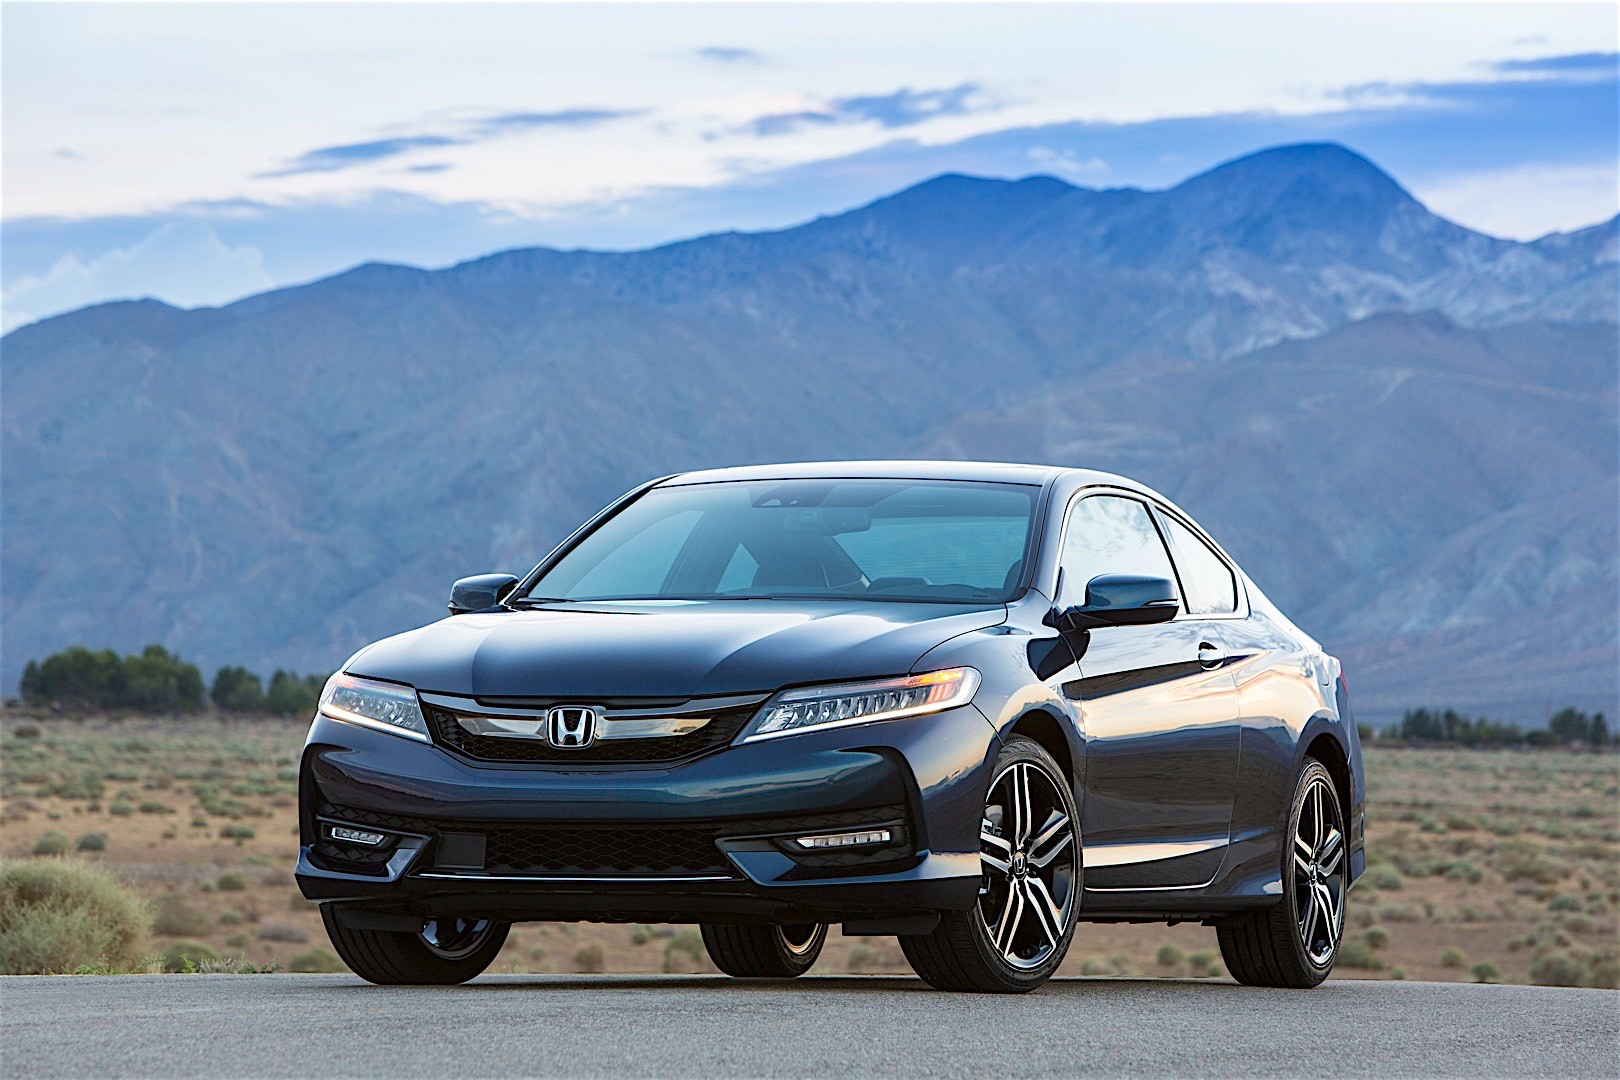 Honda Accord Coupe 2015 Specifications Honda Accord Coupe Specs